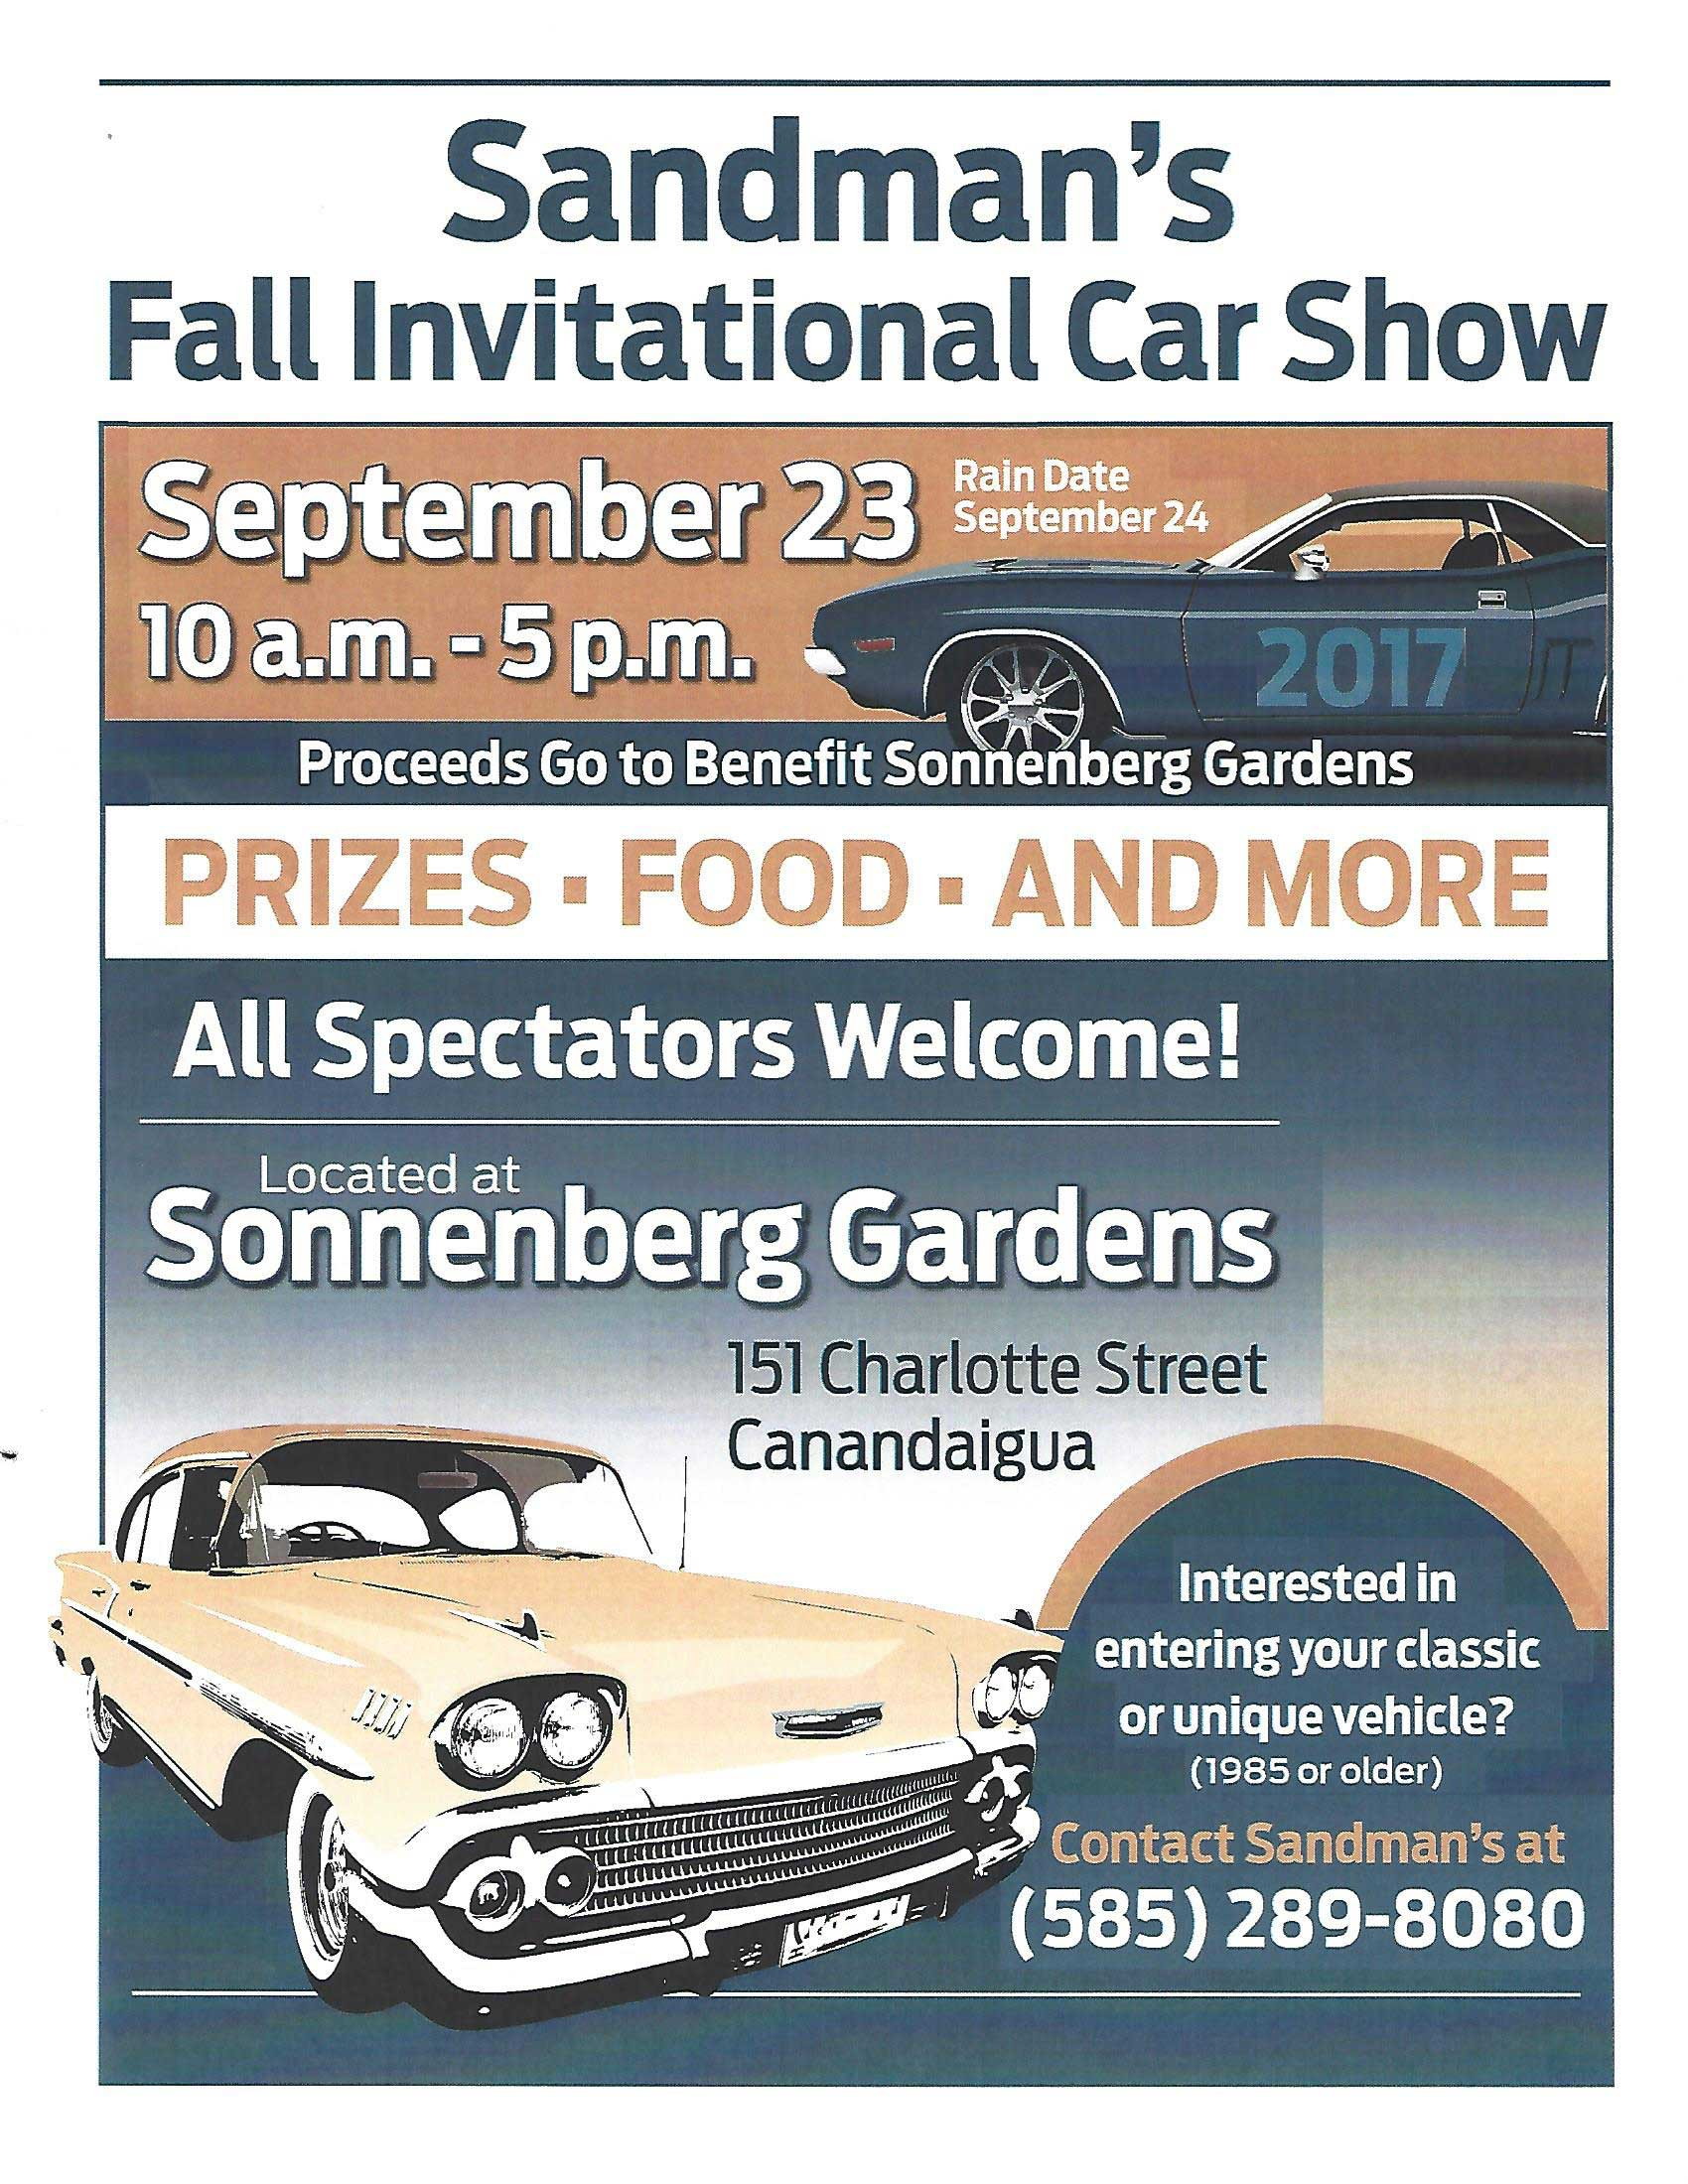 Sandman Fall Invitational Car Show